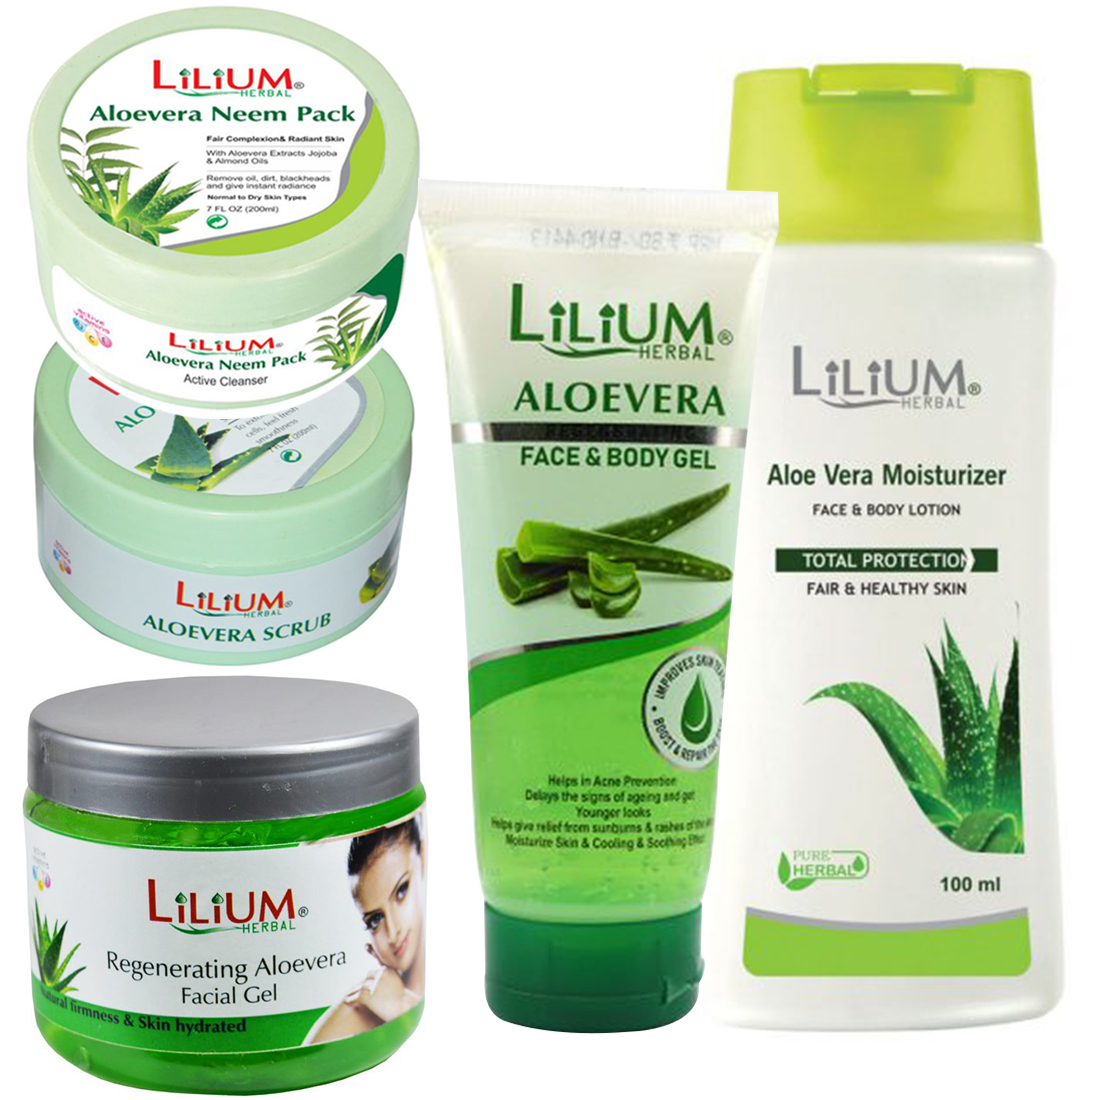 Lilium Aloevera Face Wash, Scrub, Facial Gel, Body Lotion With Facial Pack, (GC849) Pack of 5